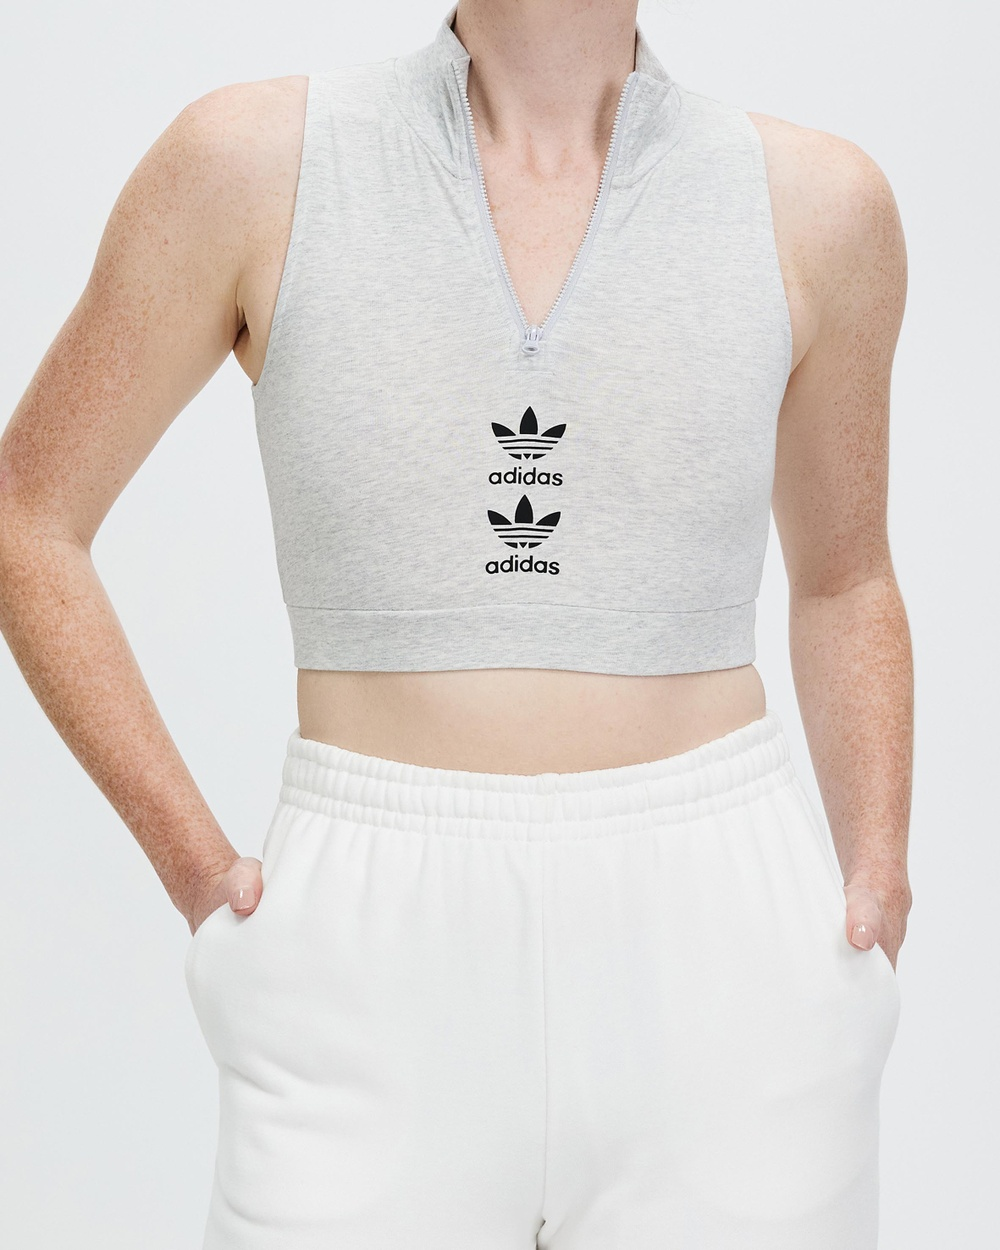 adidas Originals Logo Play Cropped Tank Muscle Tops Light Grey Heather